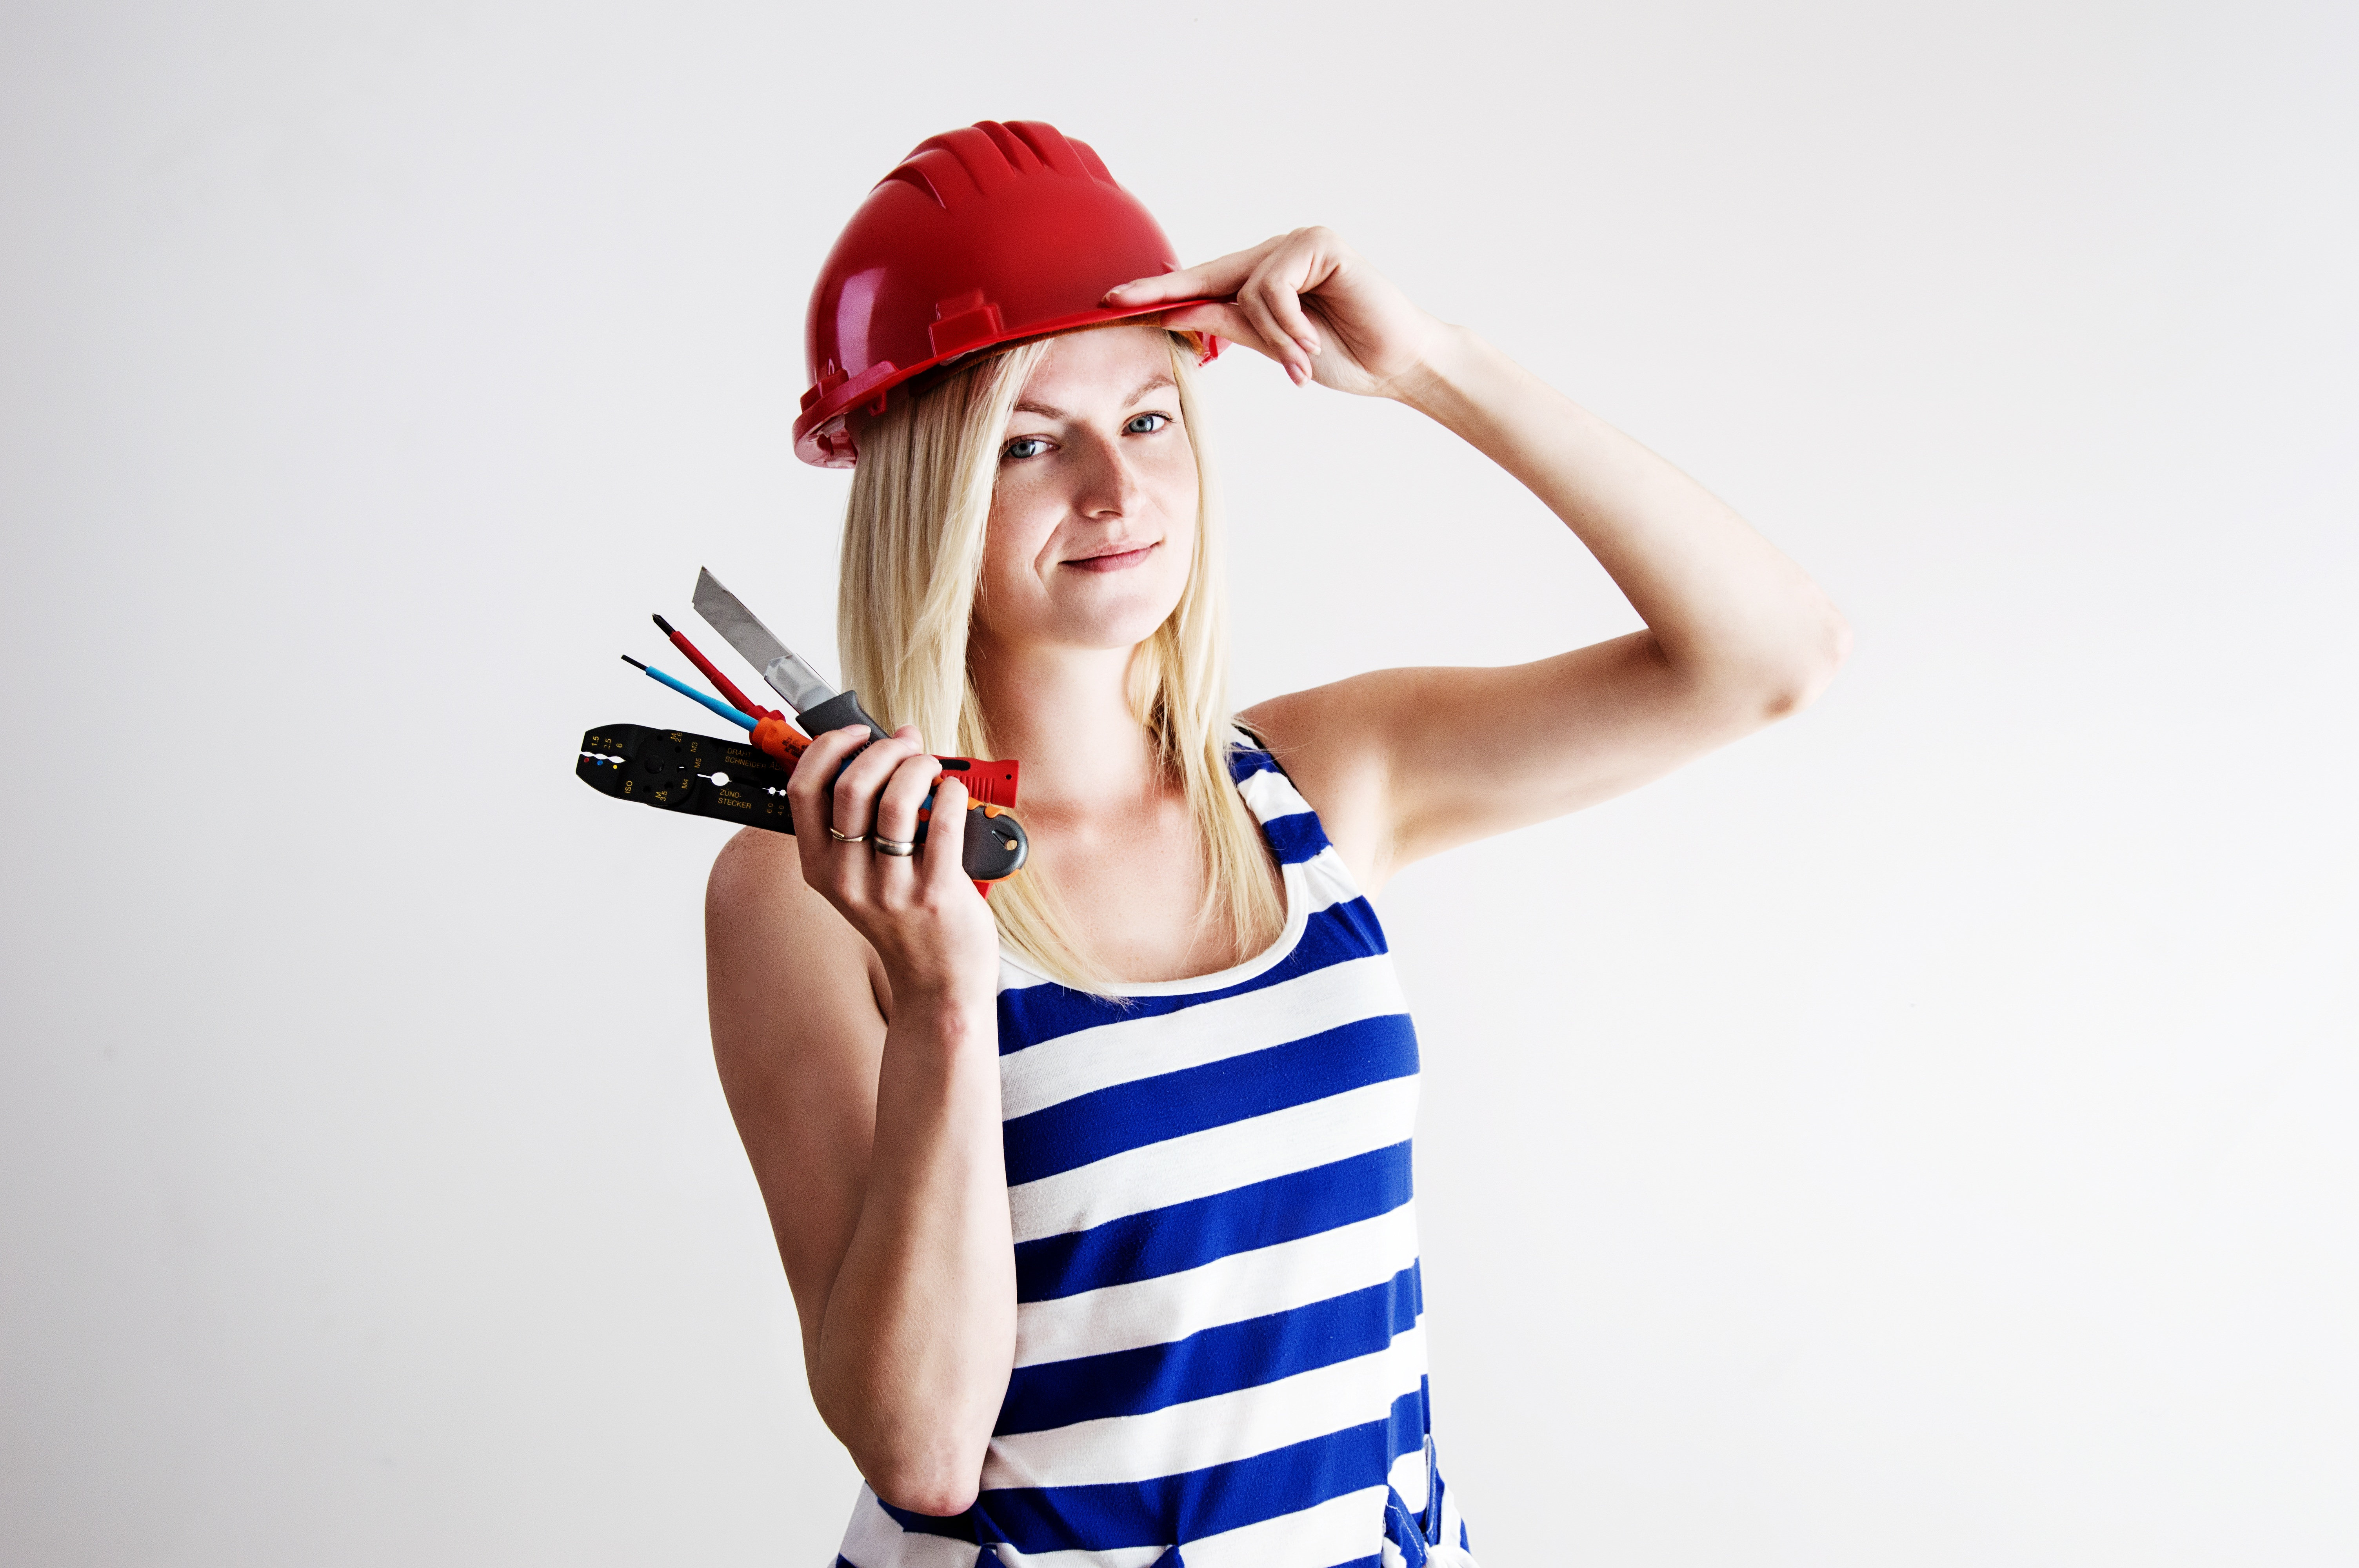 Free stock photos of electrician · Pexels